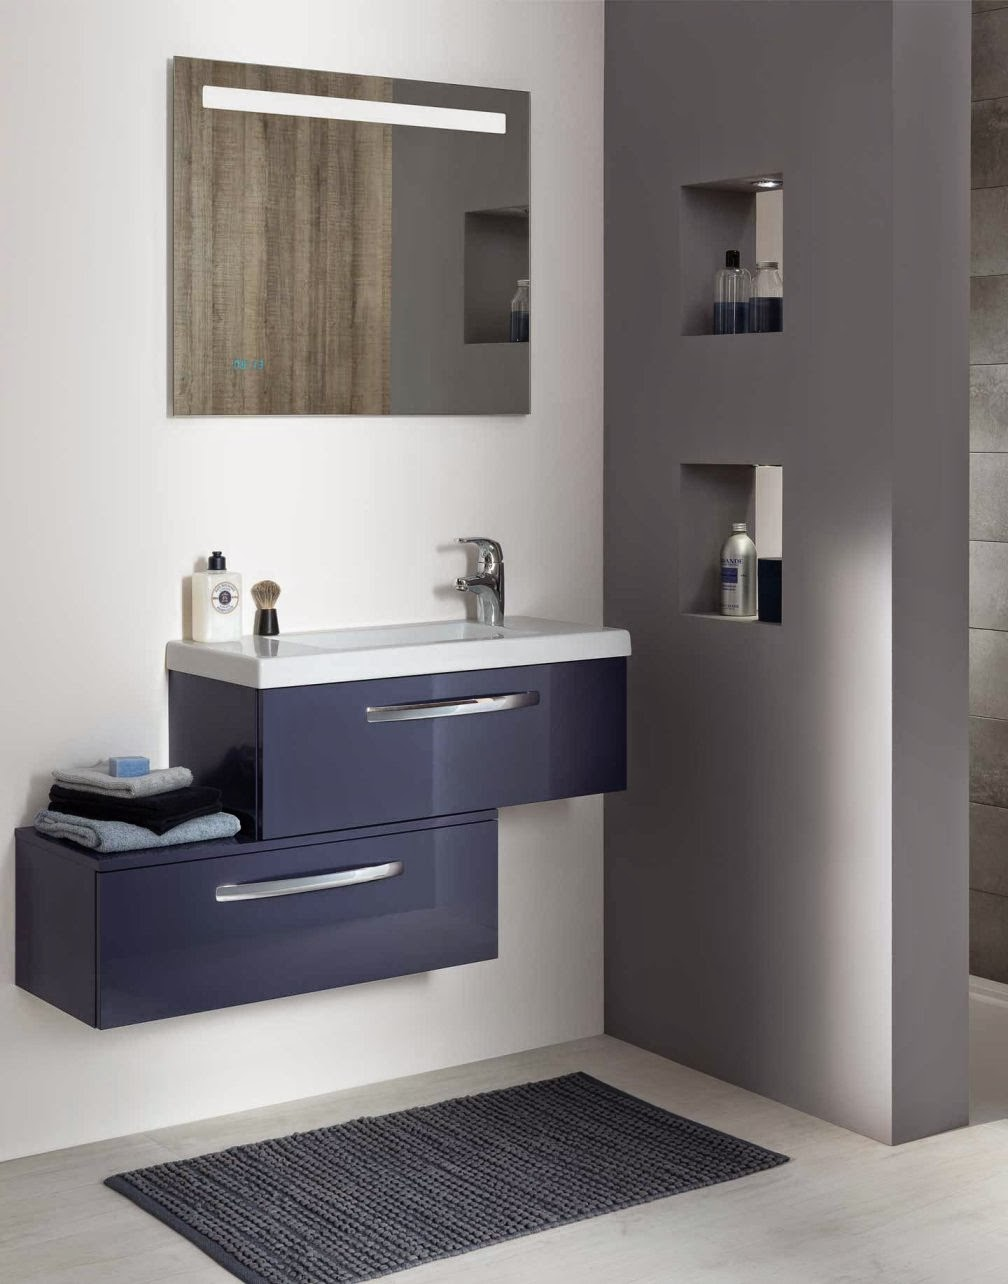 aqualys burdin bossert prolians besancon meuble de salle de bain italik sanijura. Black Bedroom Furniture Sets. Home Design Ideas